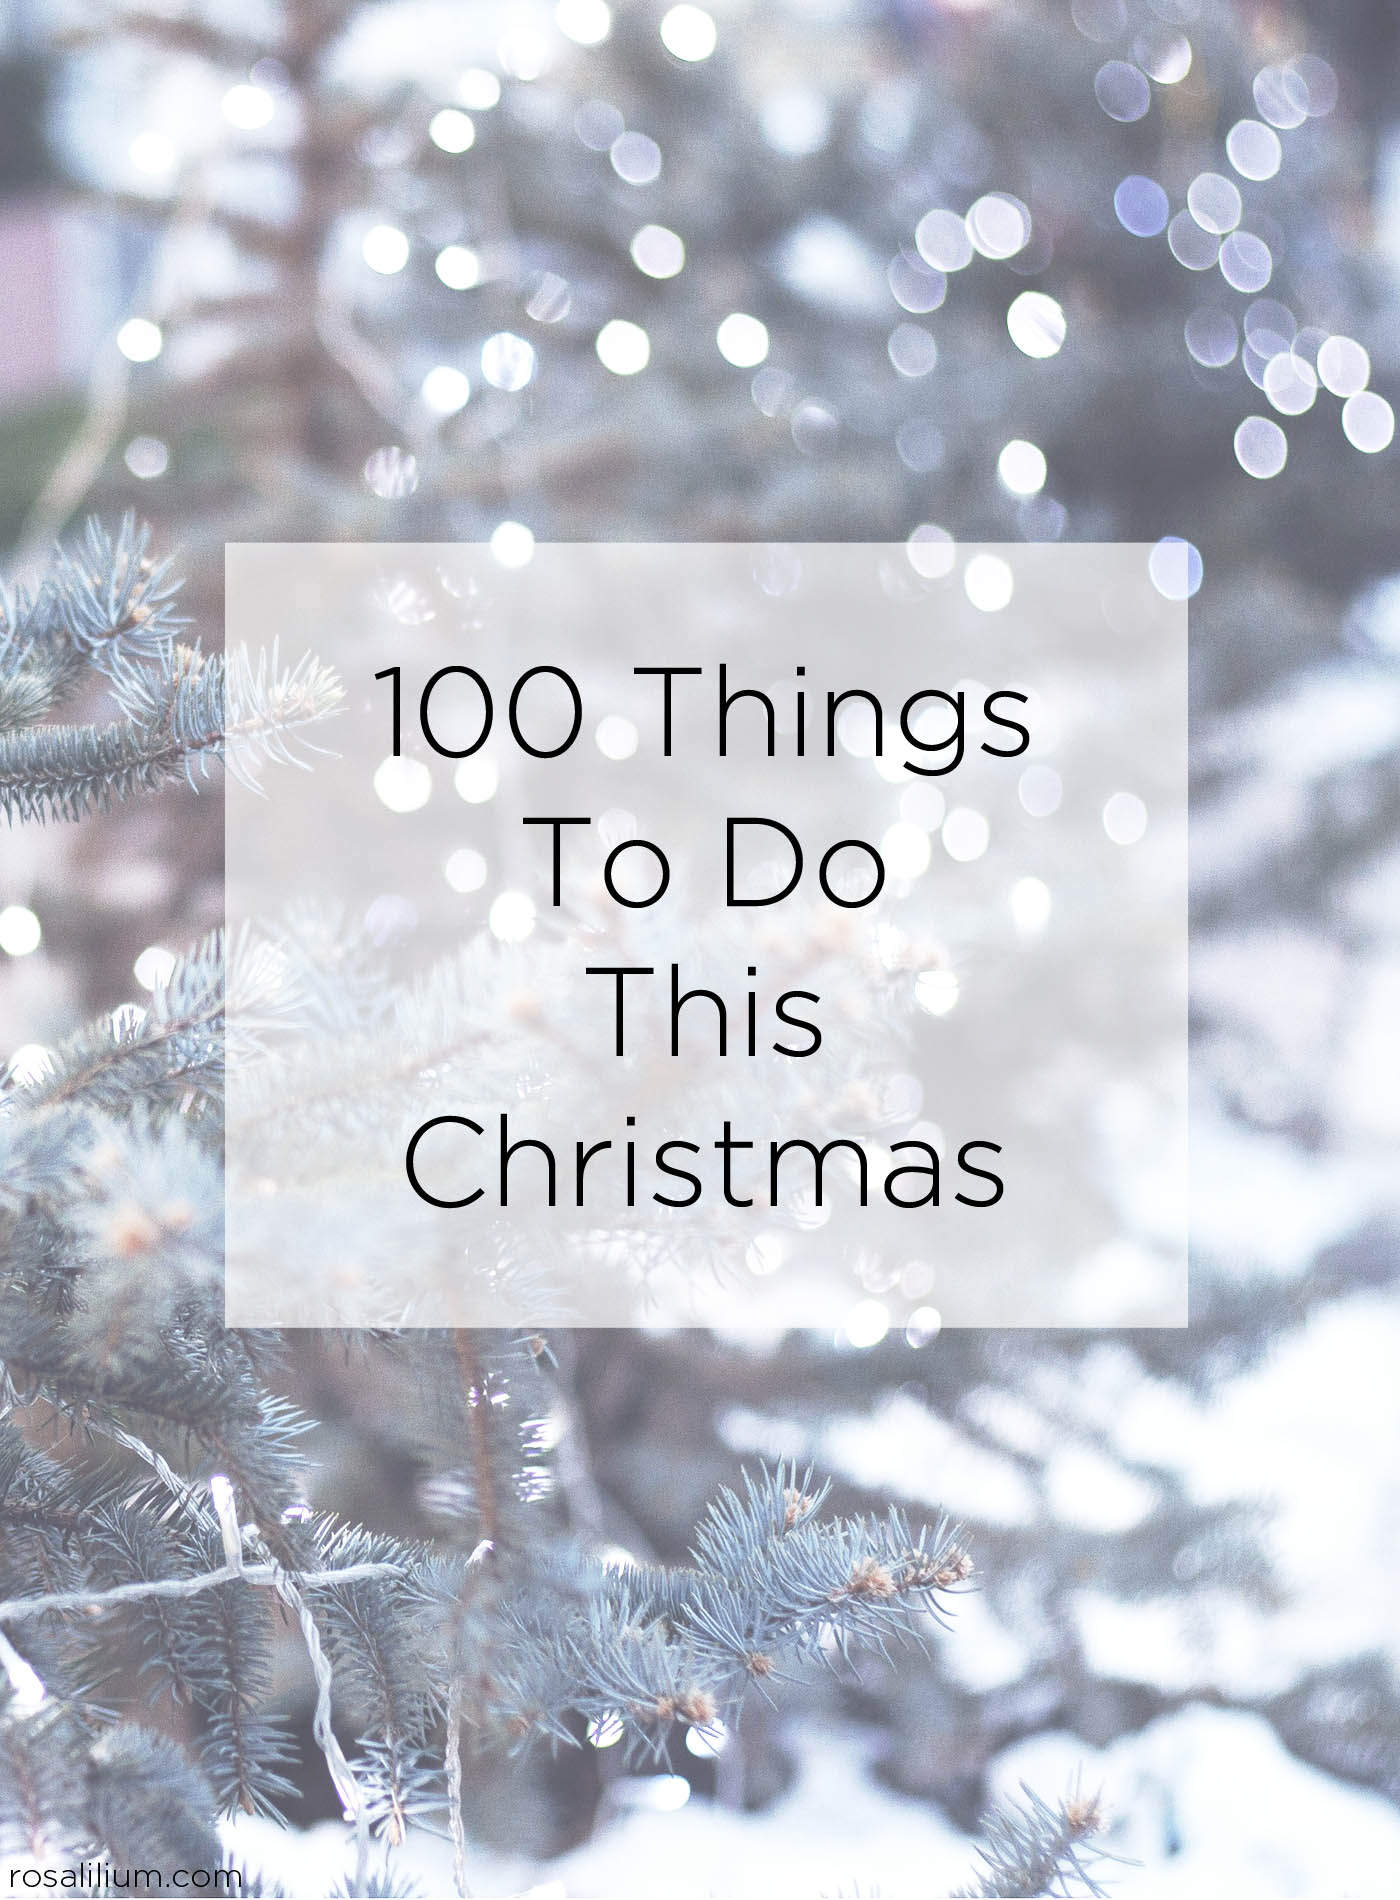 100 Things To Do This Christmas | Rosalilium